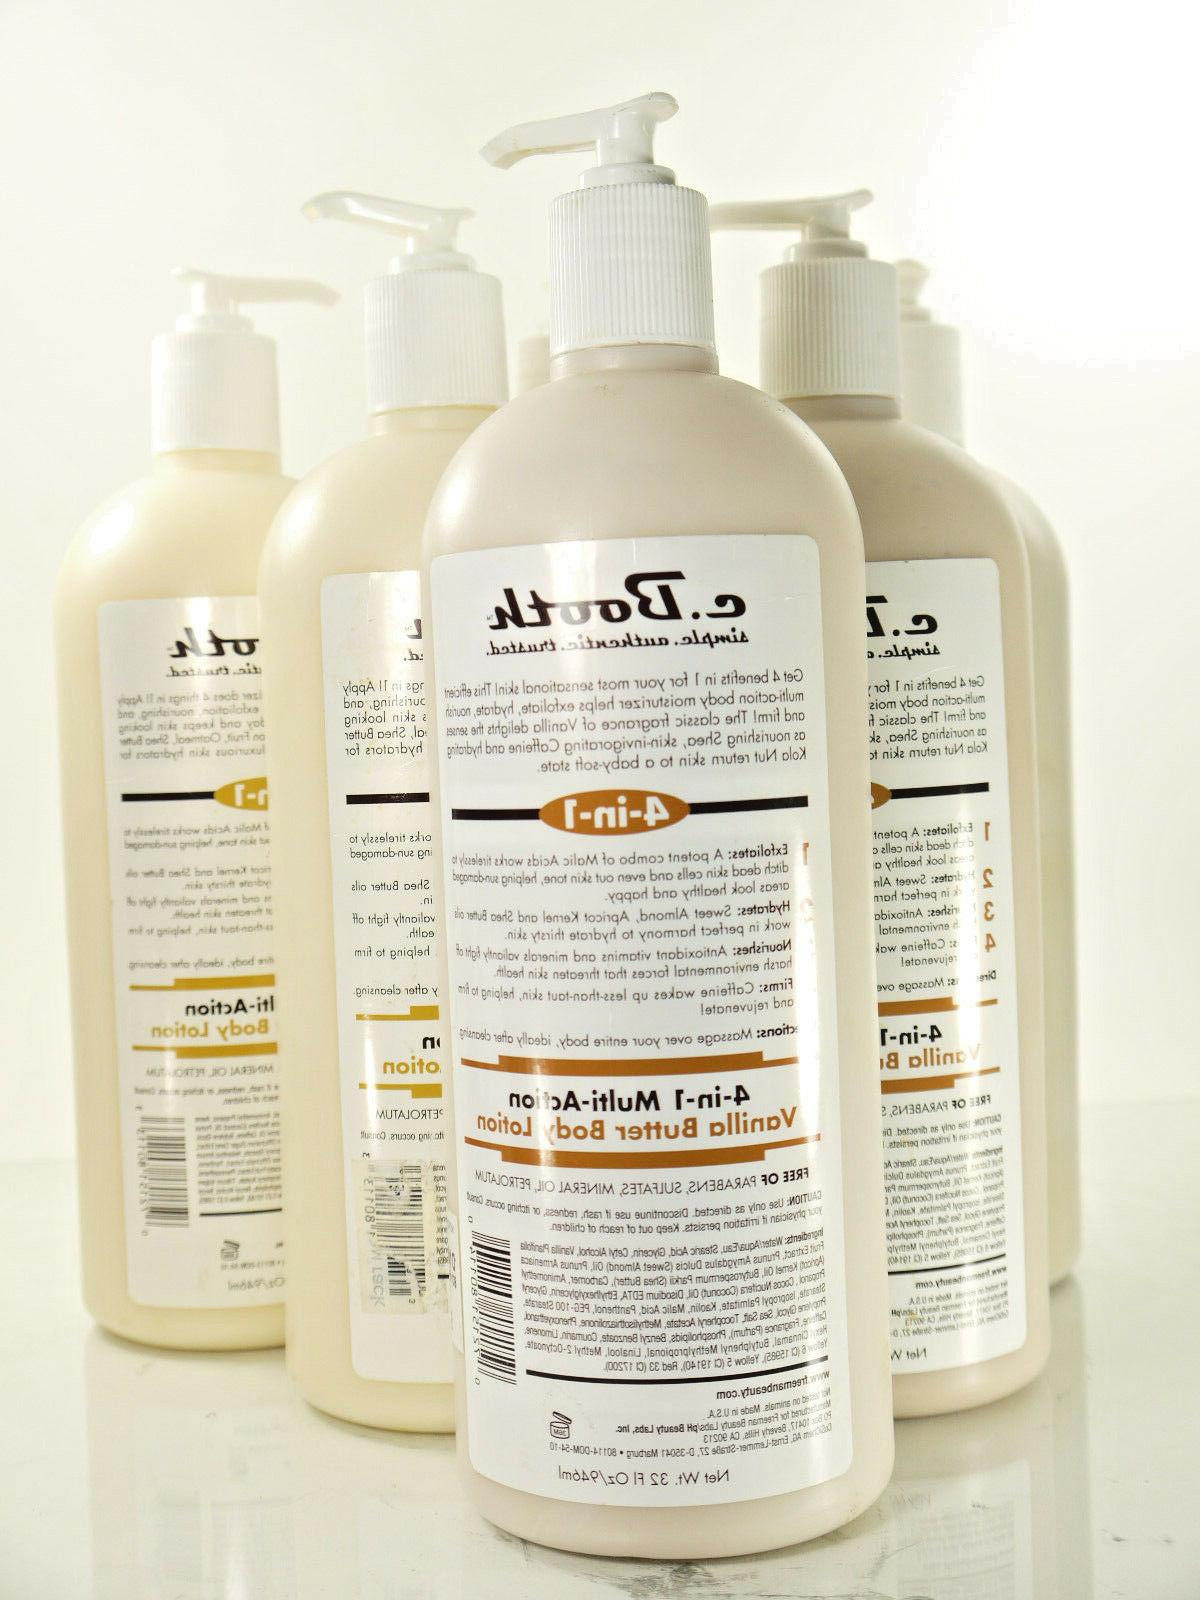 LOTS OF C. Booth 4-In-1 Multi-Action Body Lotion, Vanilla Bu